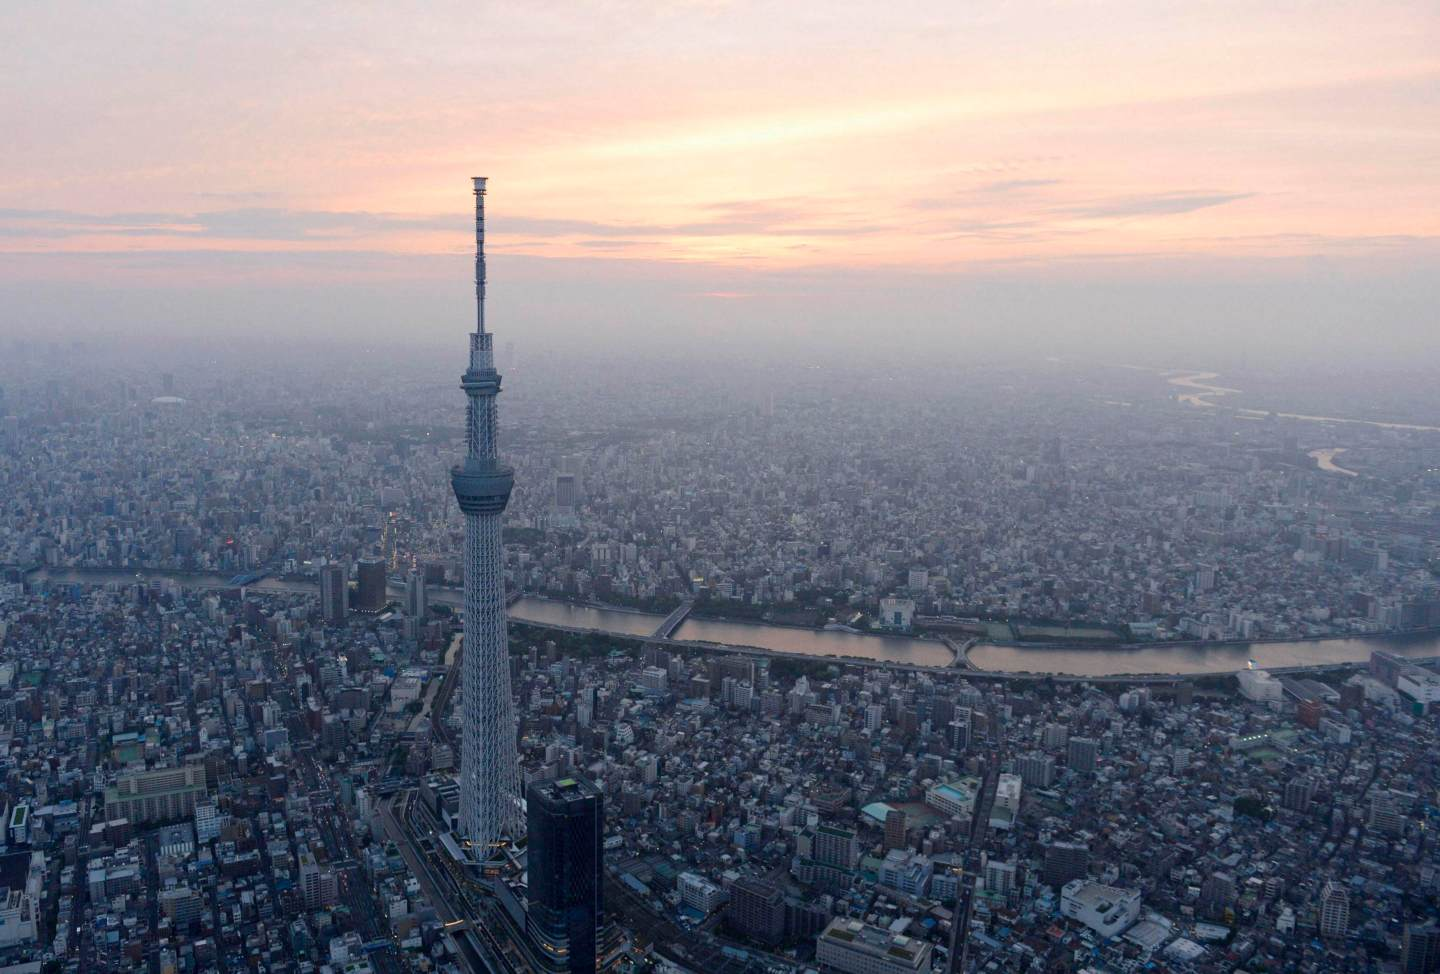 A view of Tokyo Skytree, the world's tallest broadcasting tower at 634 metres (2080 feet), in Tokyo